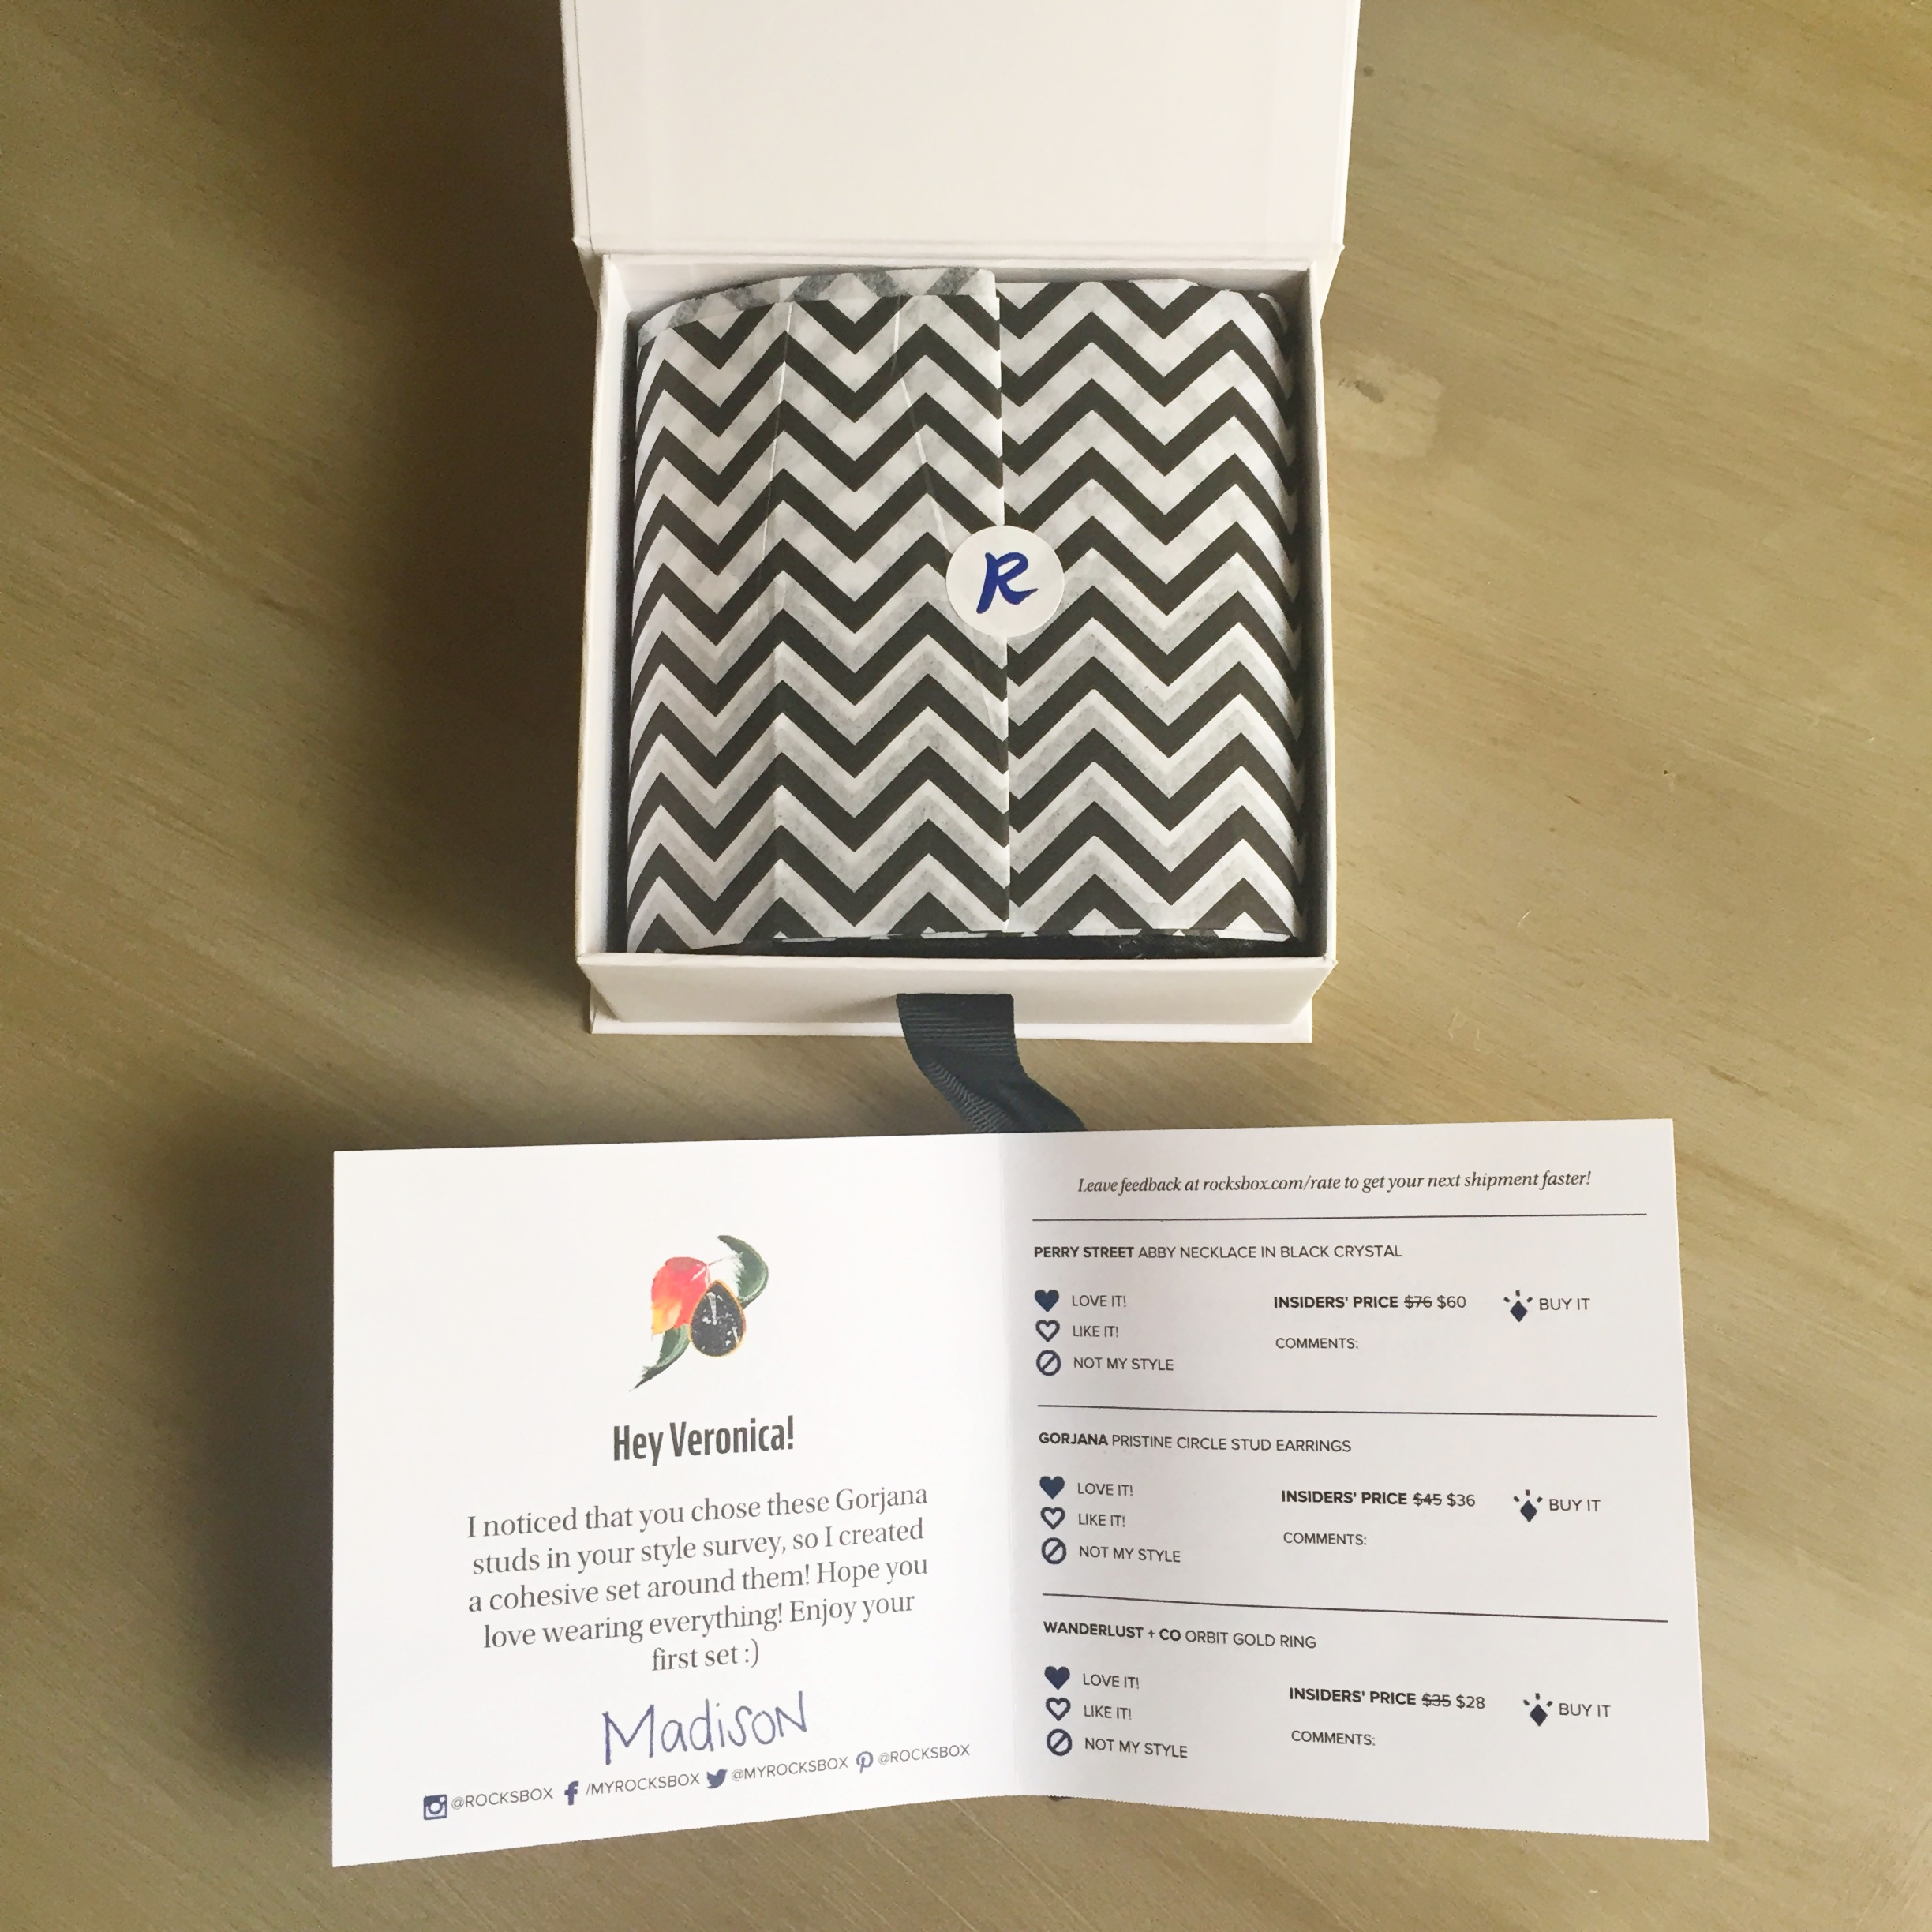 Loving the chevron print tissue! A sneak peak into my curated selection that Madison picked for me form my style quiz.